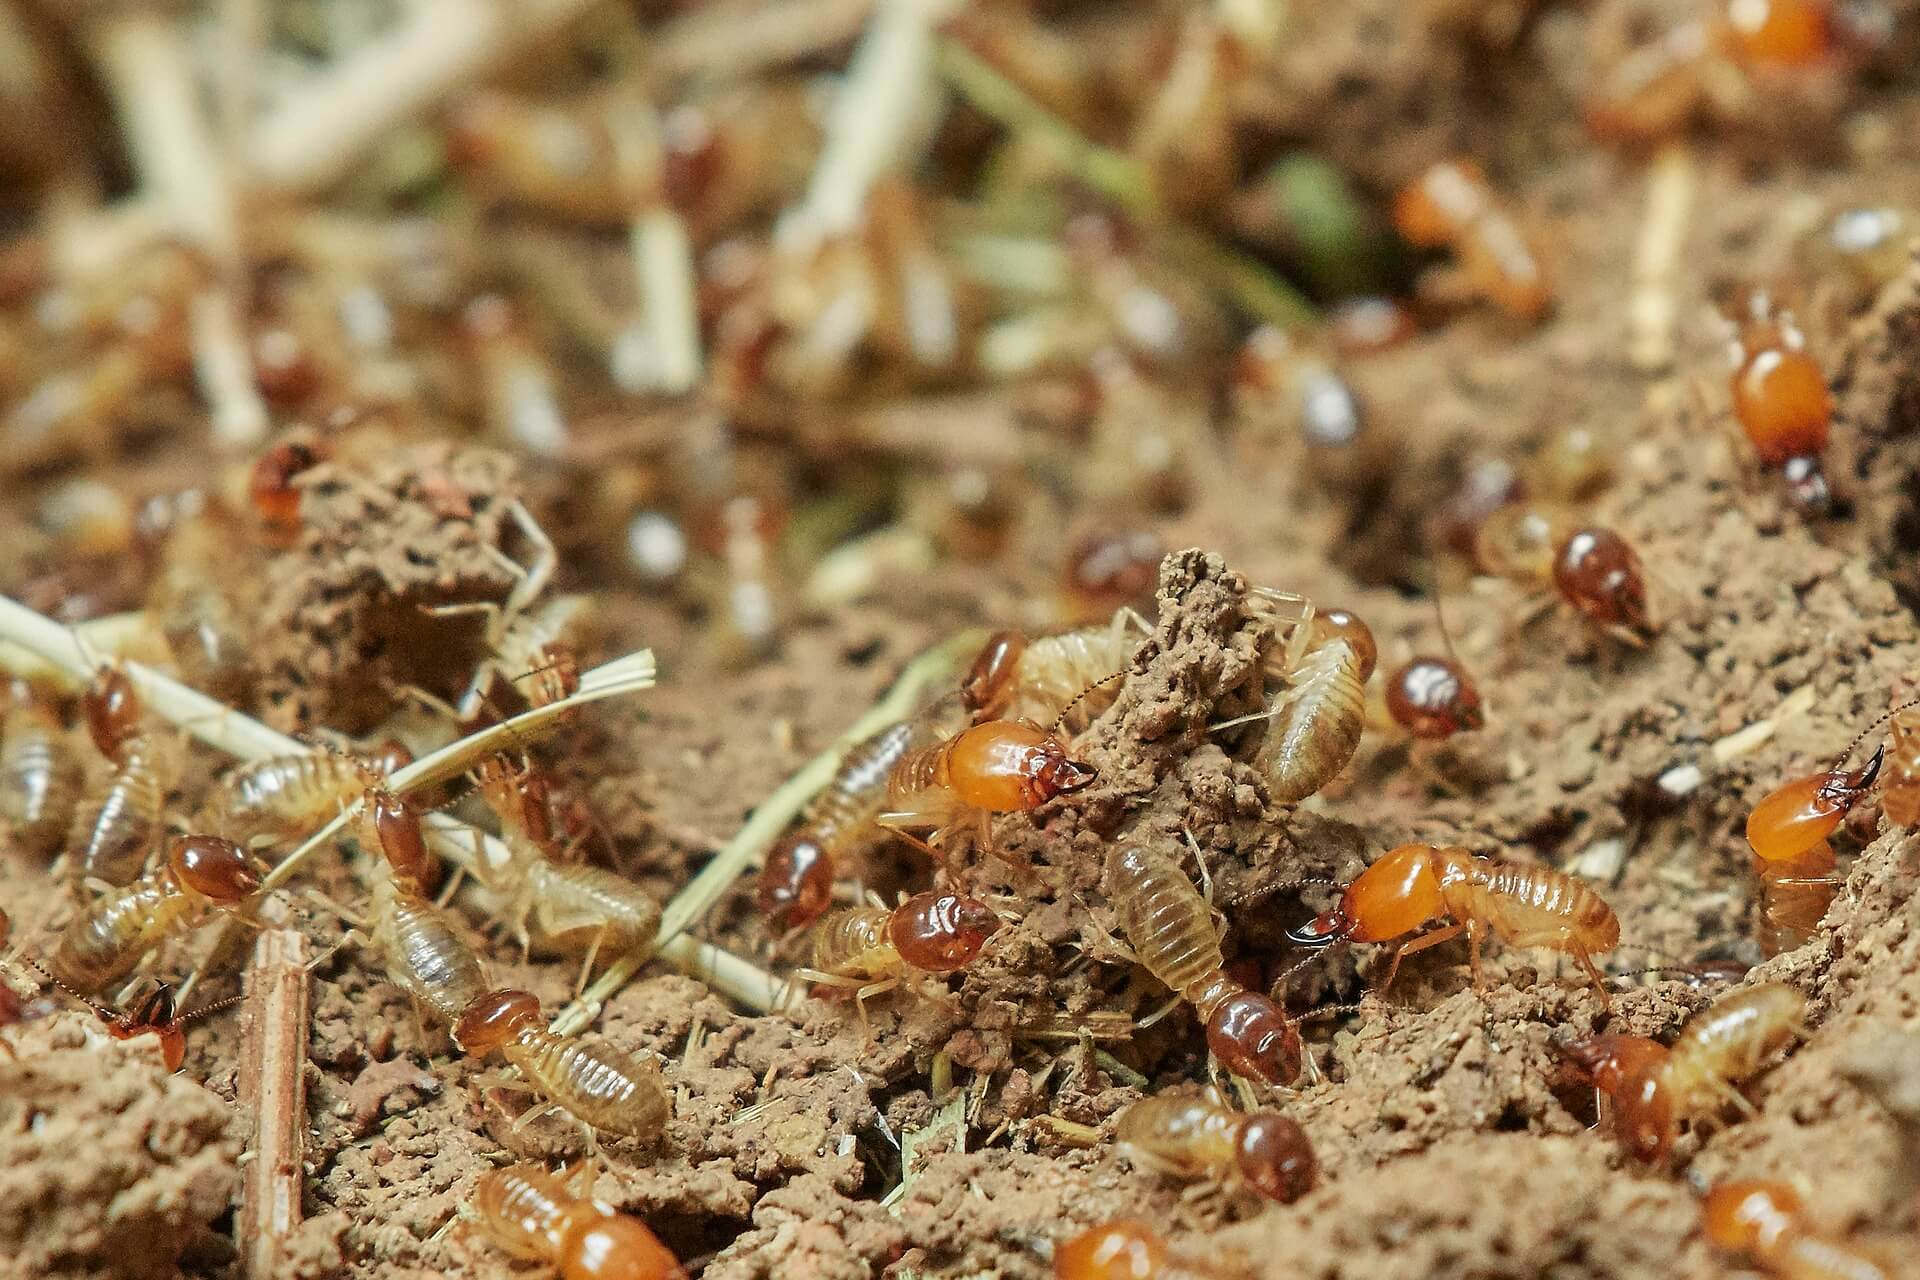 Life Cycle of Termites